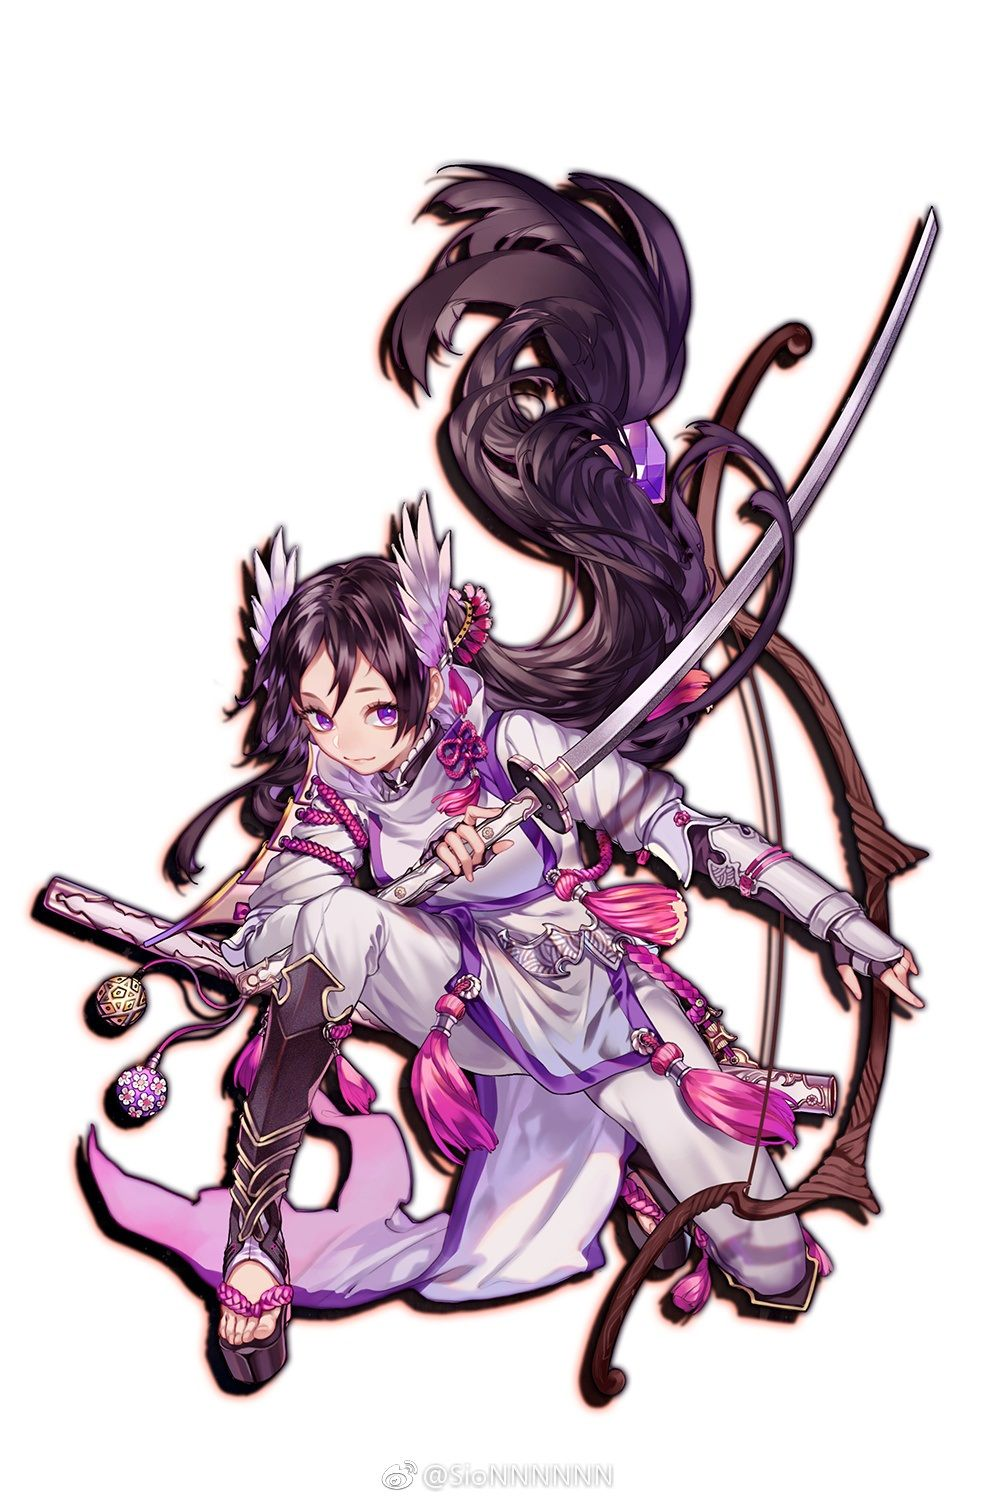 Pin By Nicholas Yan On Fgo Character Illustration Character Design Fate Stay Night Series